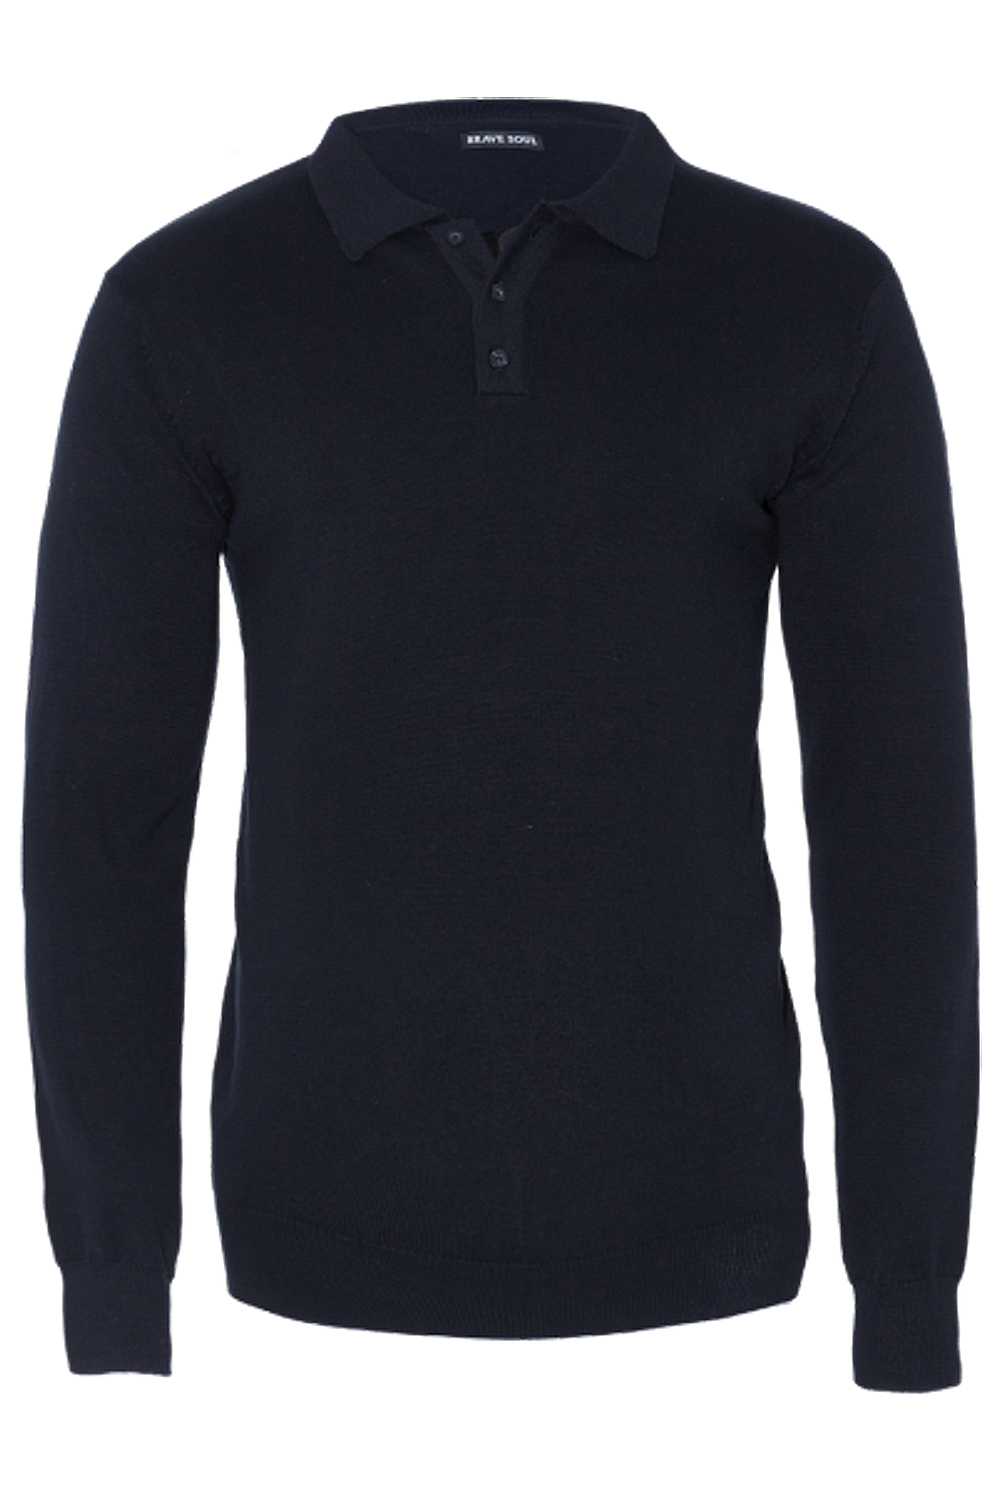 Brave-Soul-Placket-Mens-Polo-Shirt-Long-Sleeve-Cotton-Pique-Knit-Collared-Jumper thumbnail 4